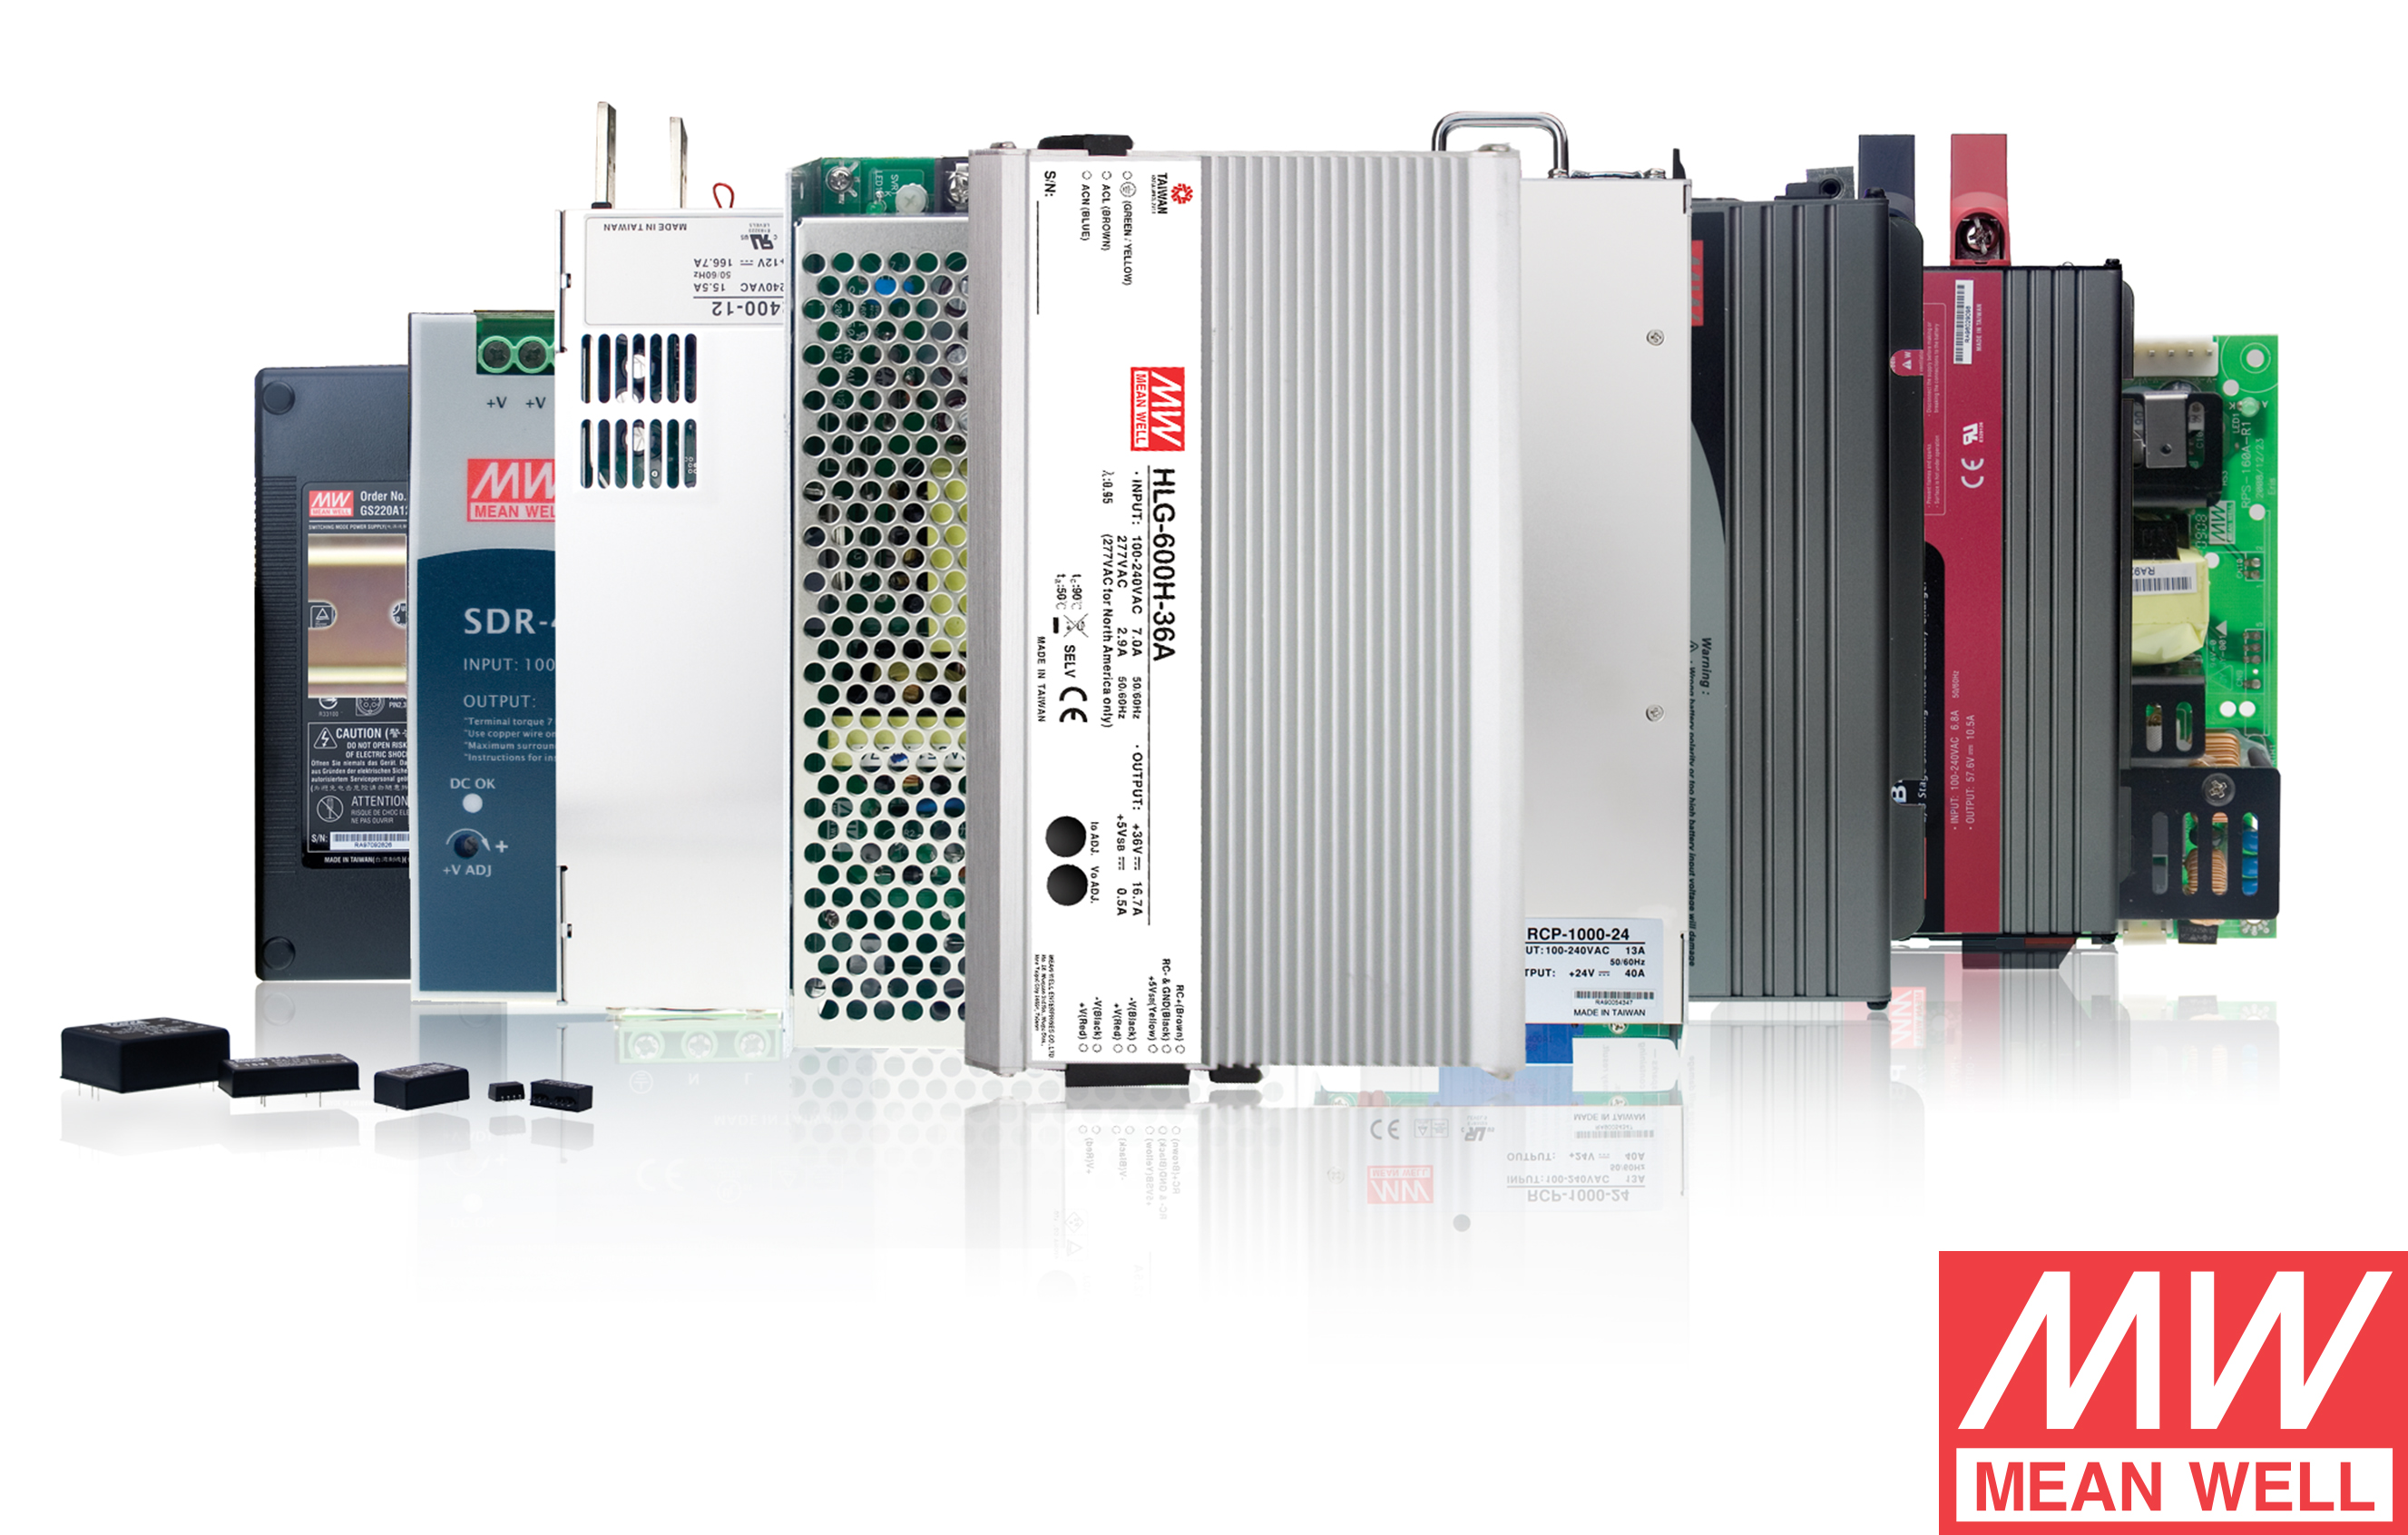 MEAN WELL power supplies stock in Australia